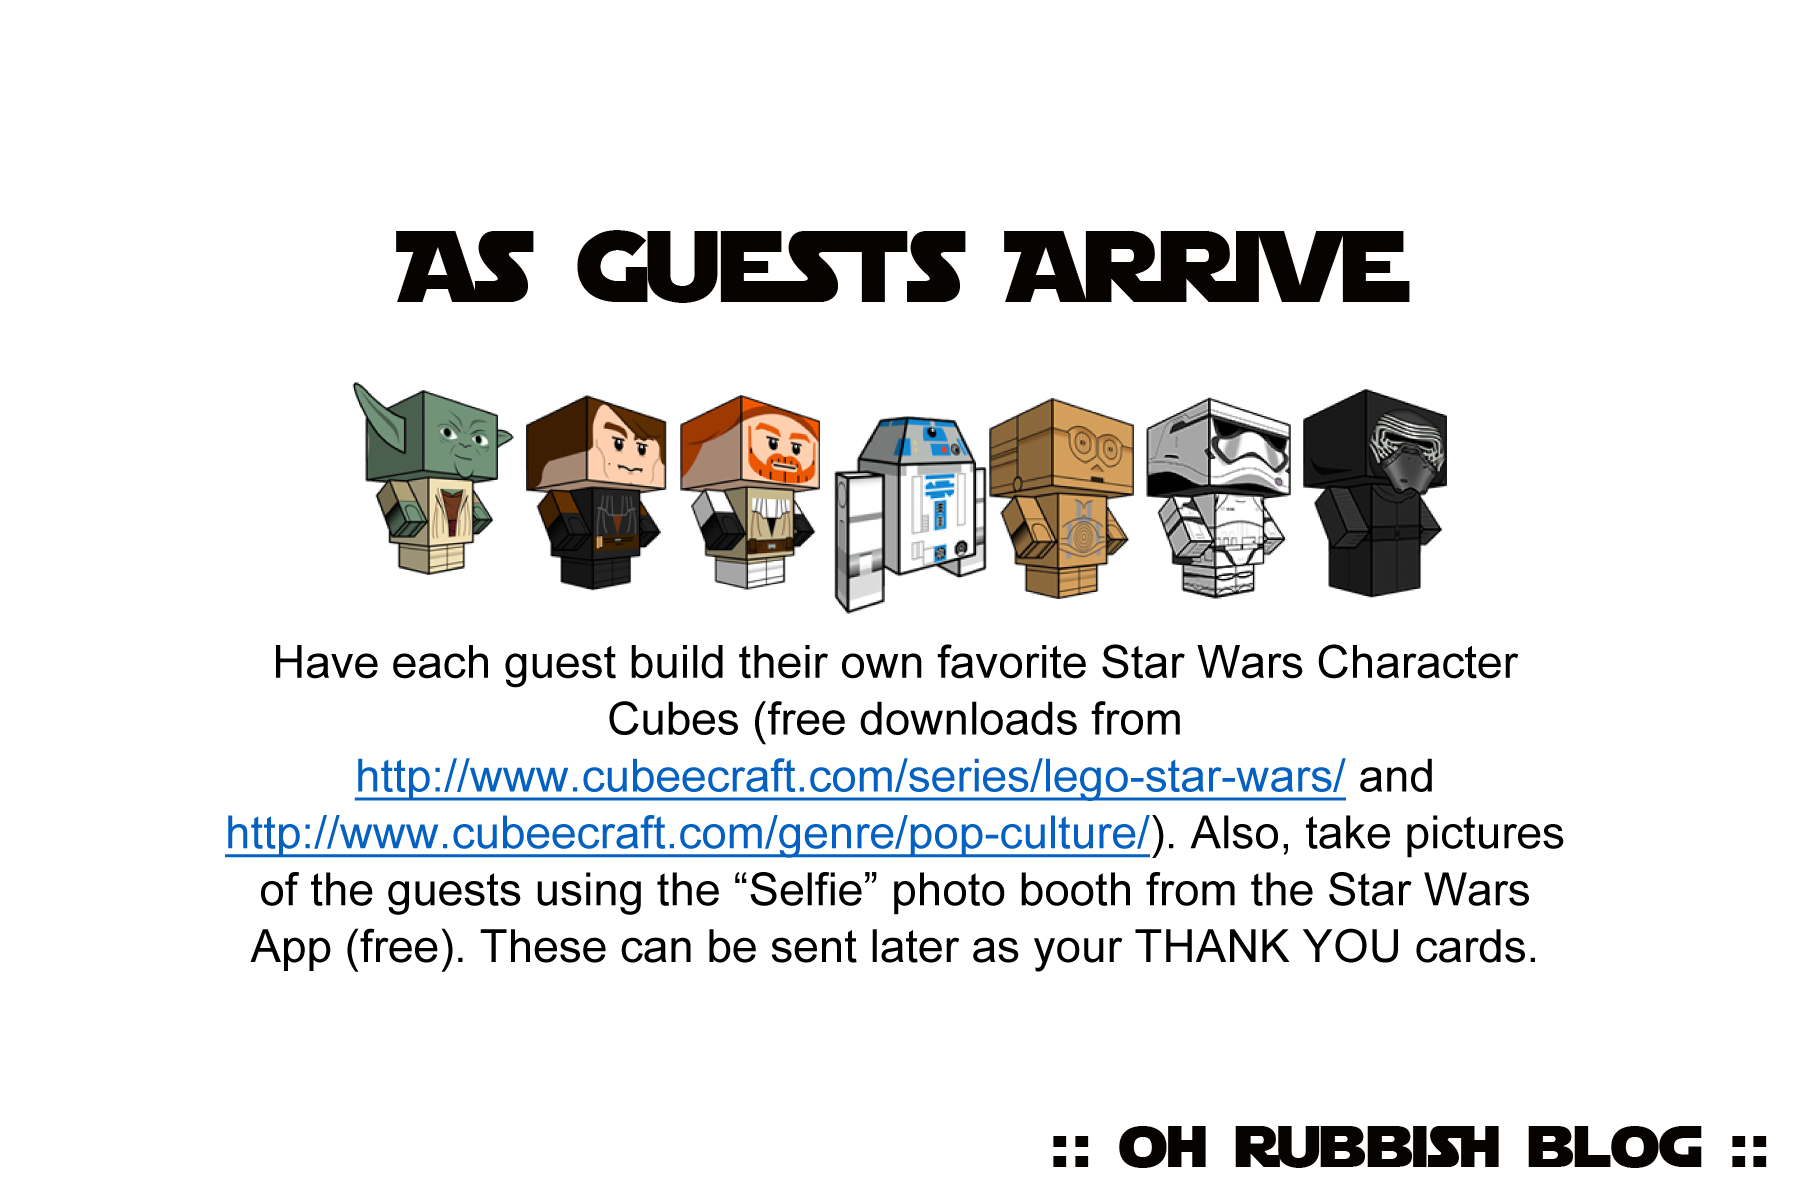 photograph relating to Star Wars Birthday Invitations Printable titled Star Wars Birthday Occasion Programs :: Invitation, Video games